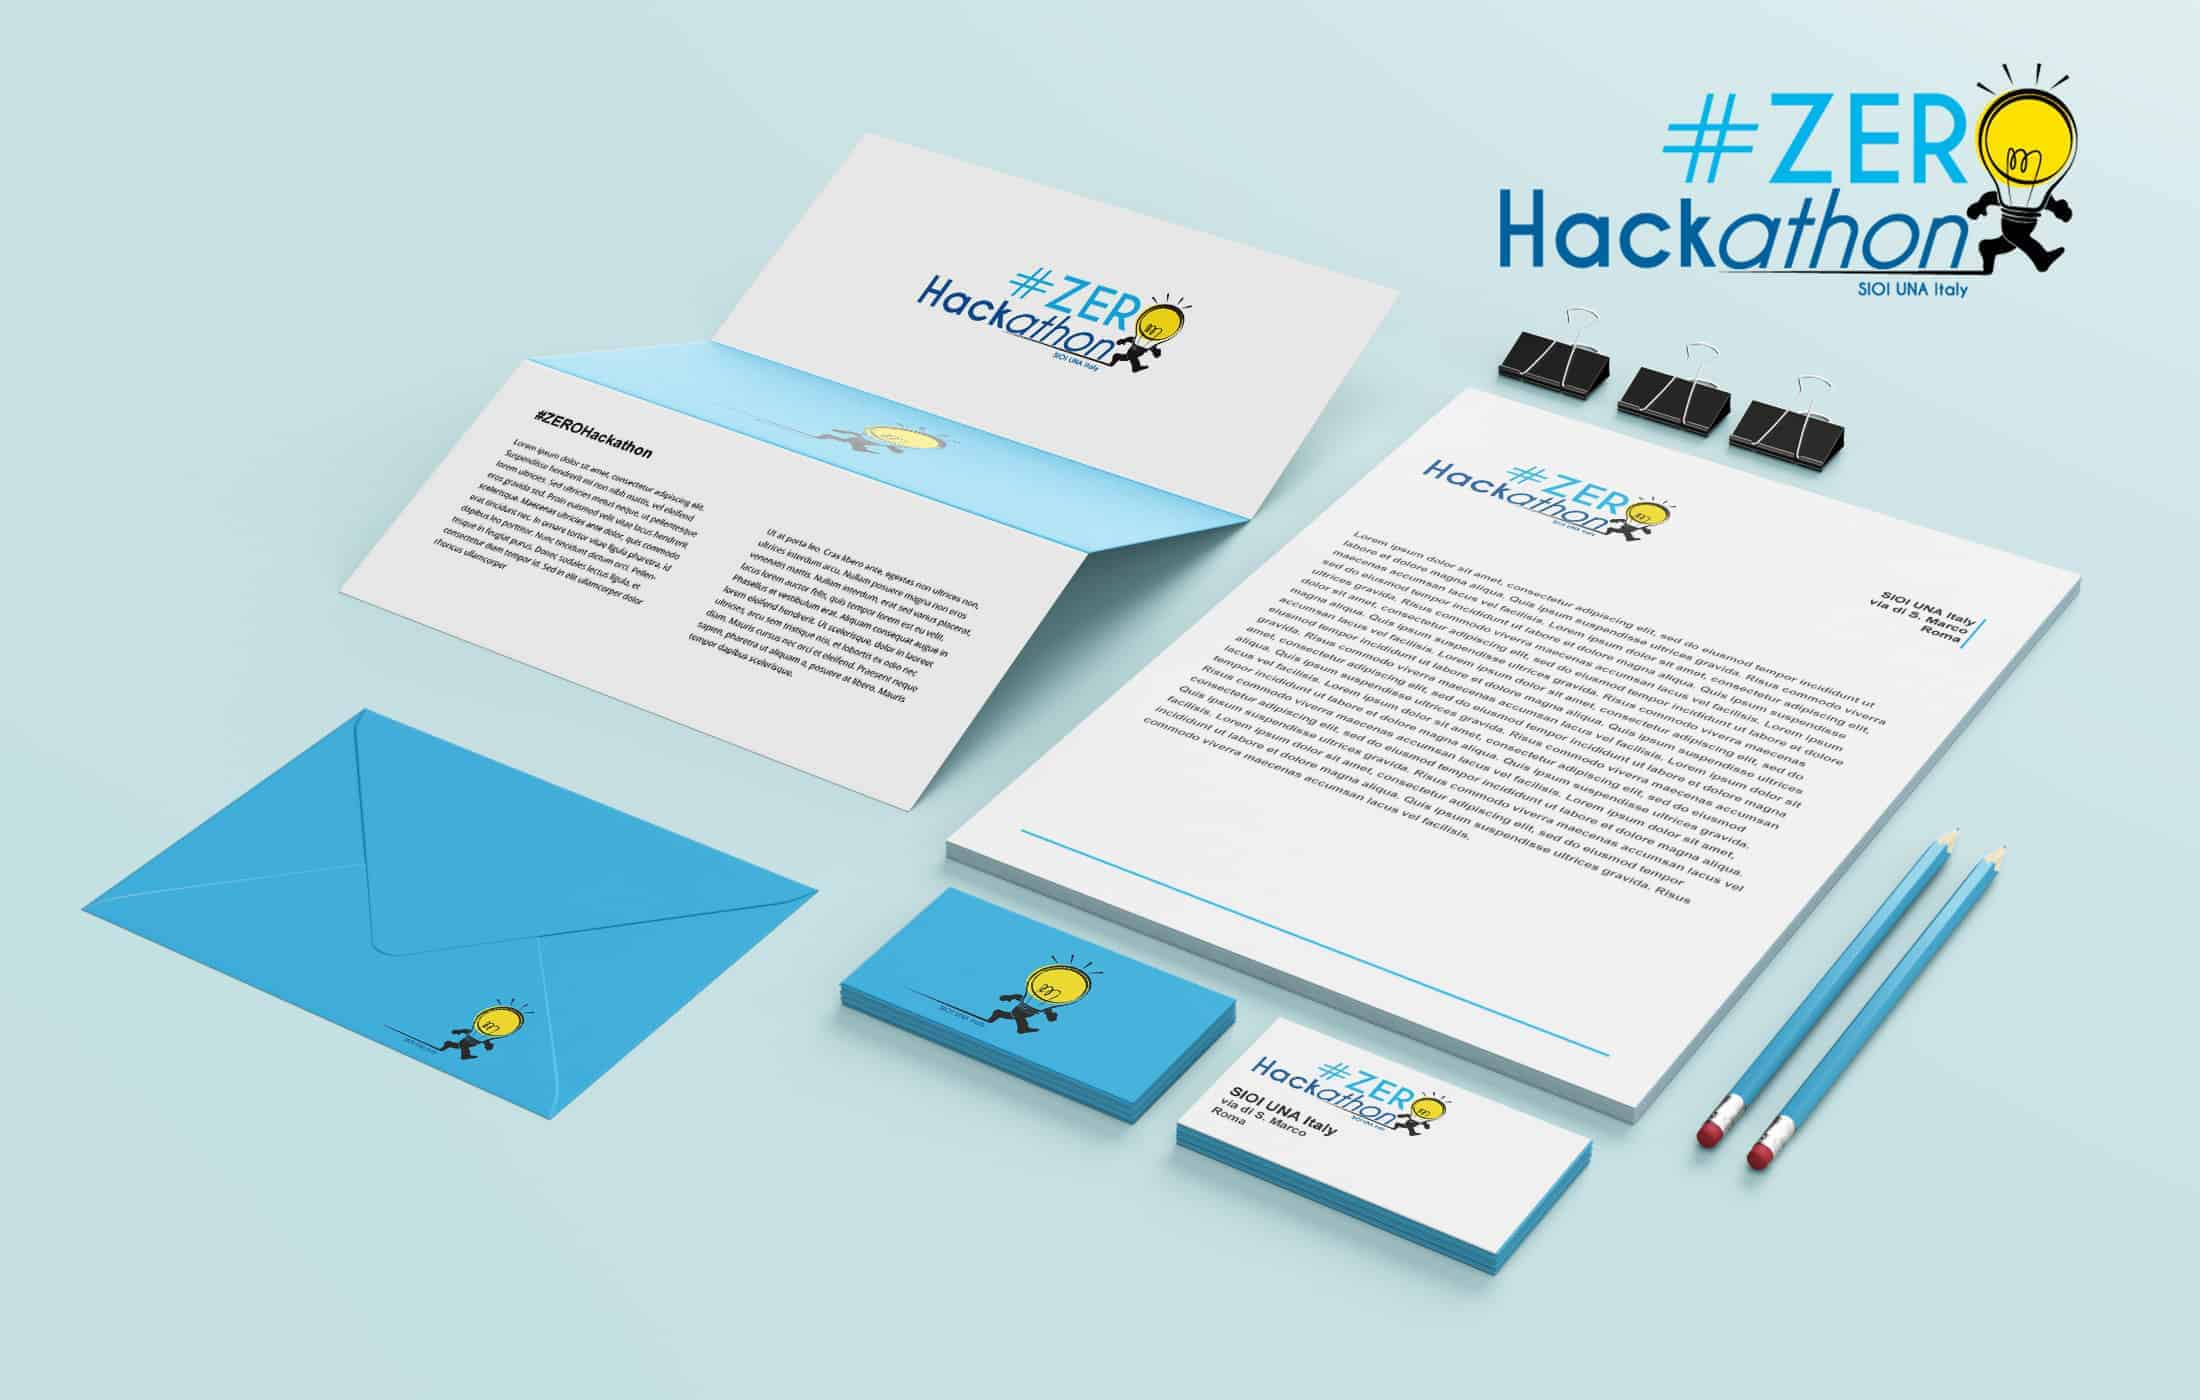 Corporate Identity for the event Zeroackathon